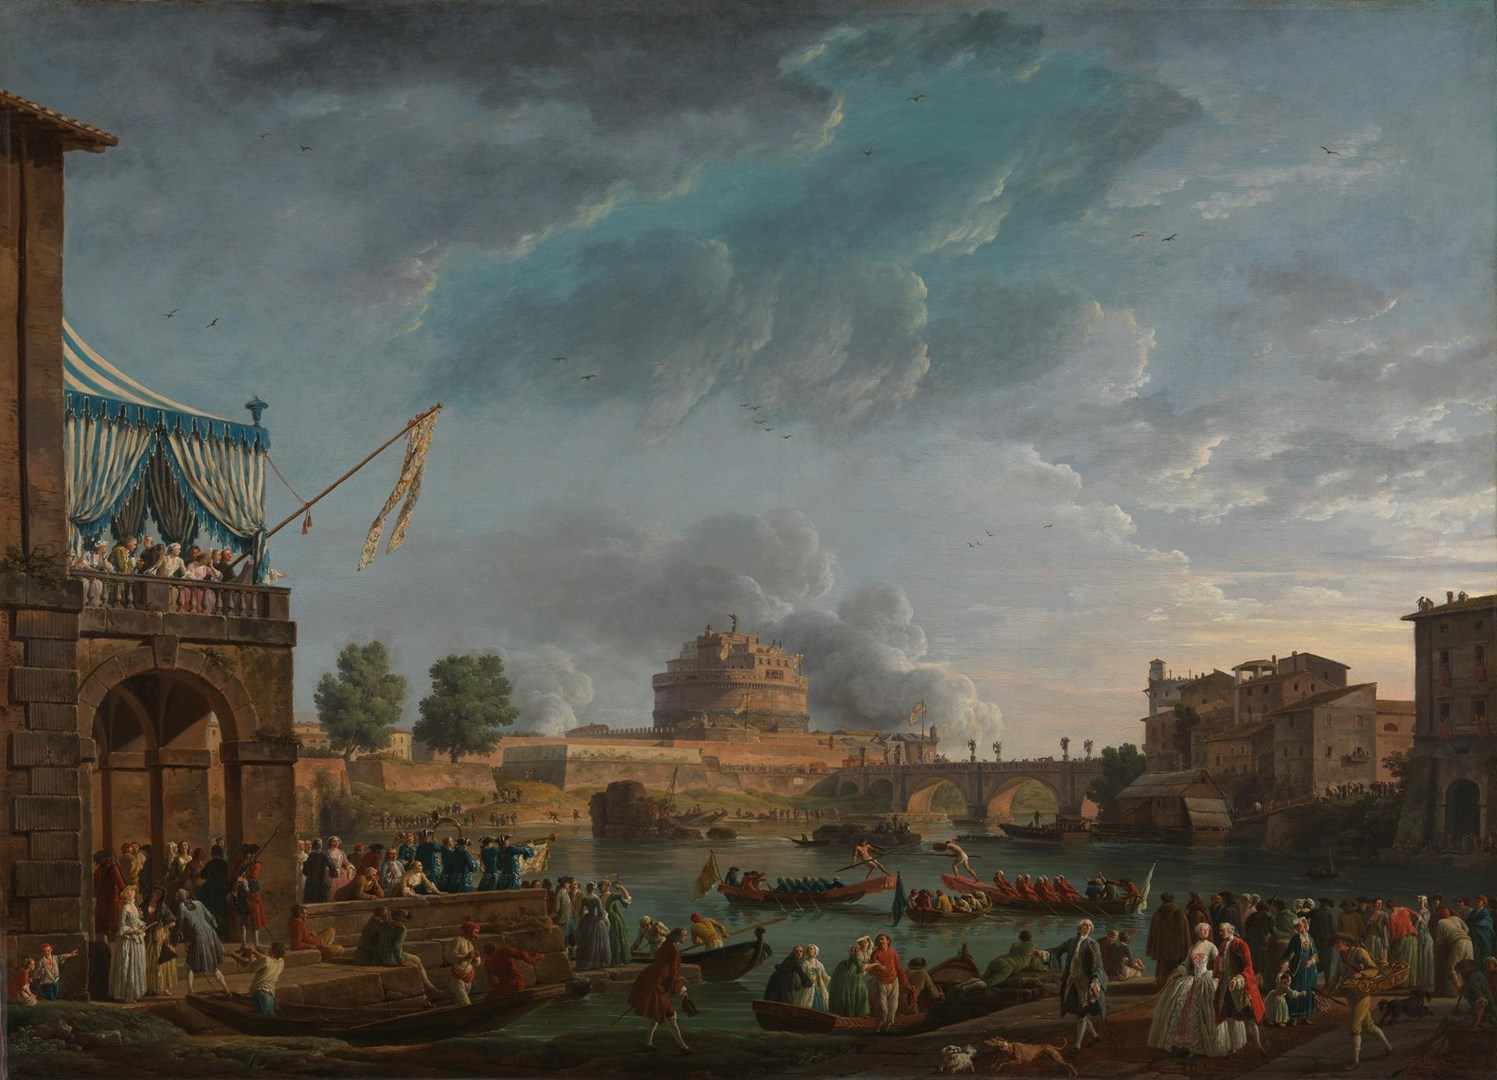 A Sporting Contest on the Tiber by Claude-Joseph Vernet